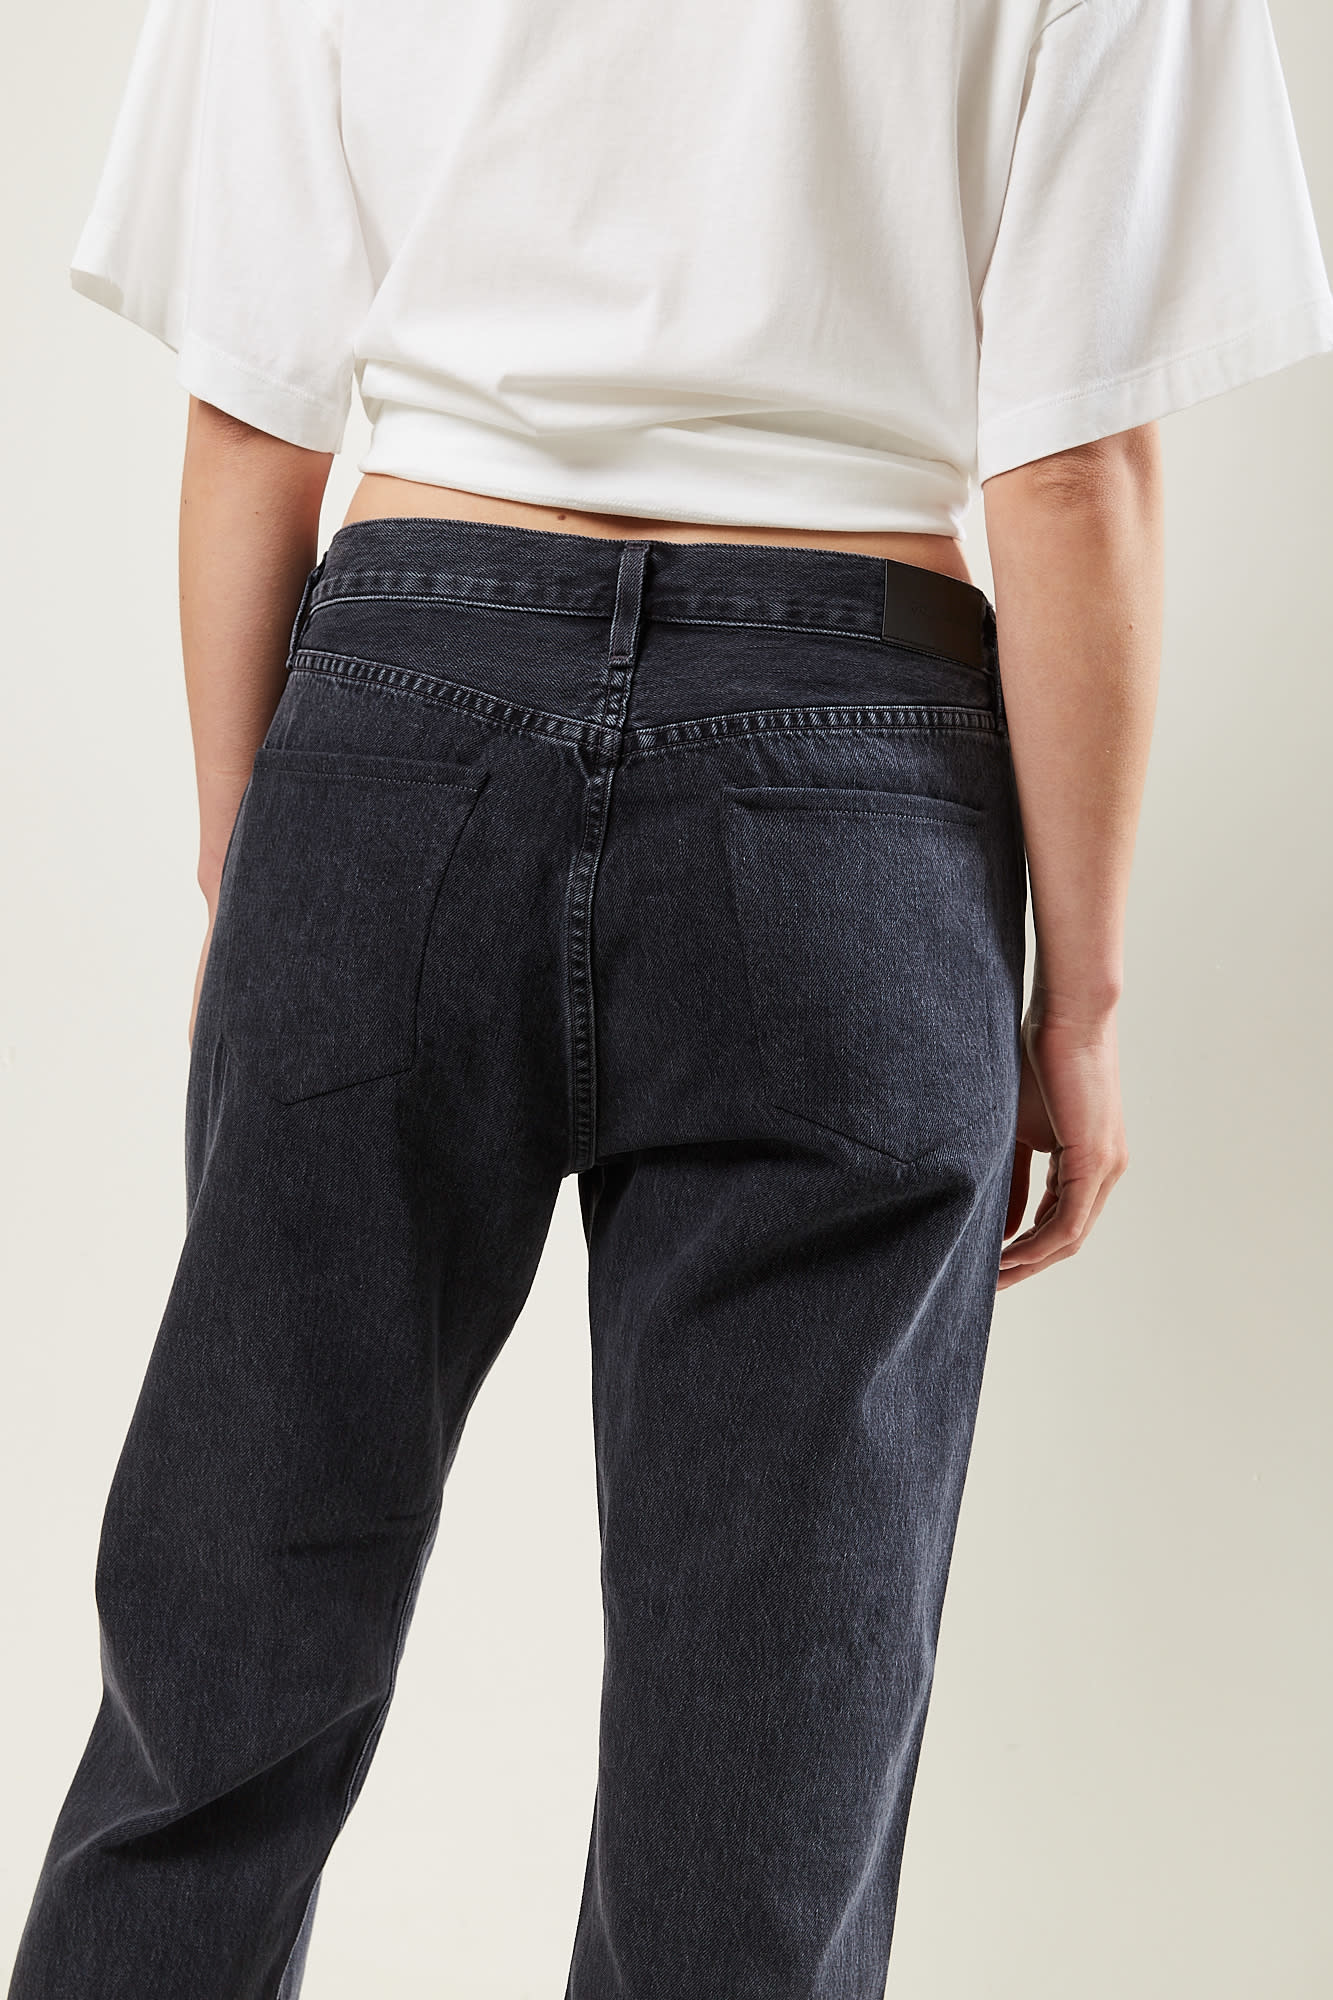 Goldsign Relaxed jean